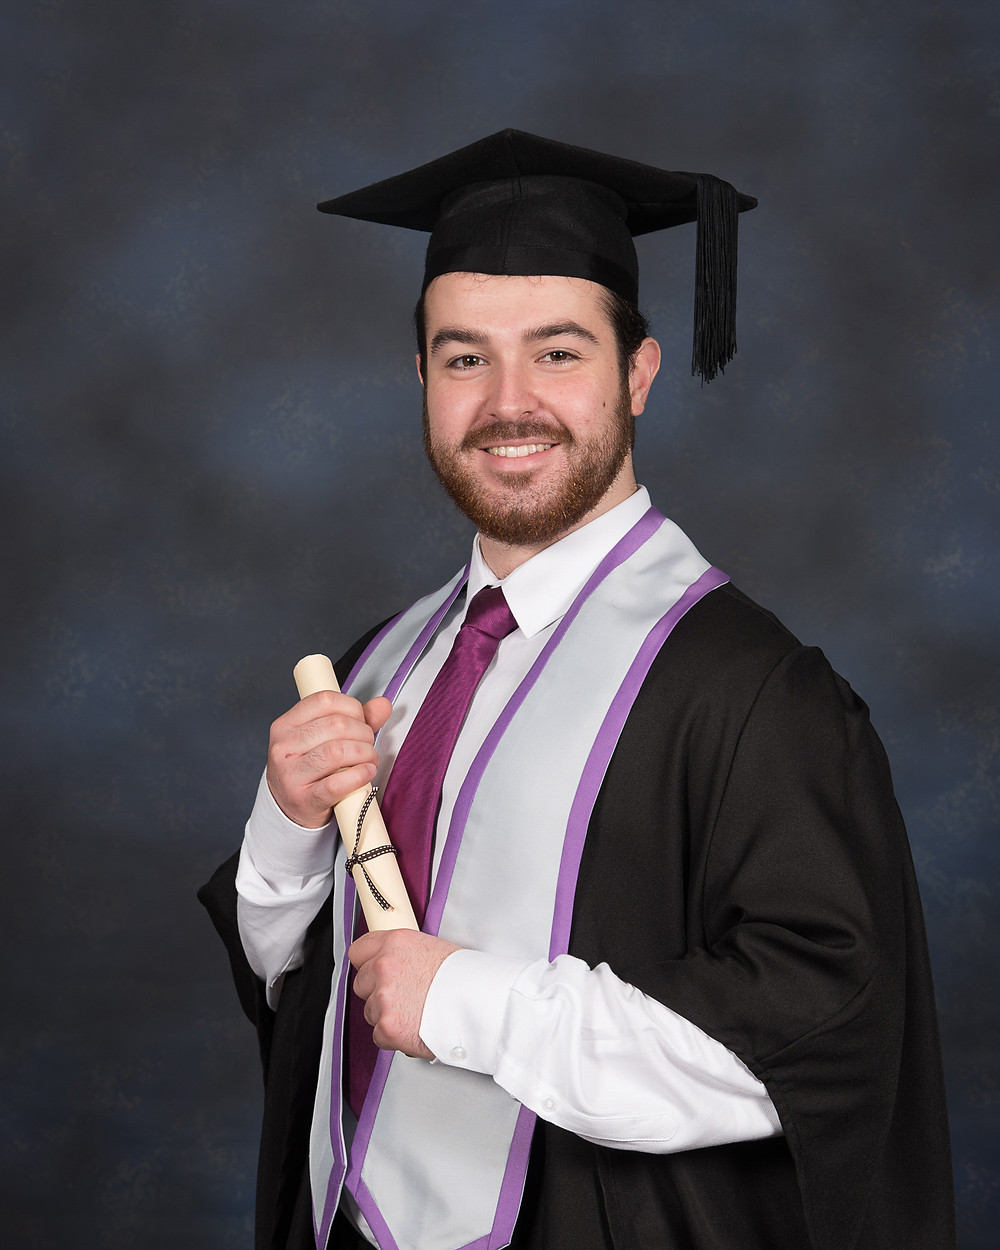 Graduation photo formal